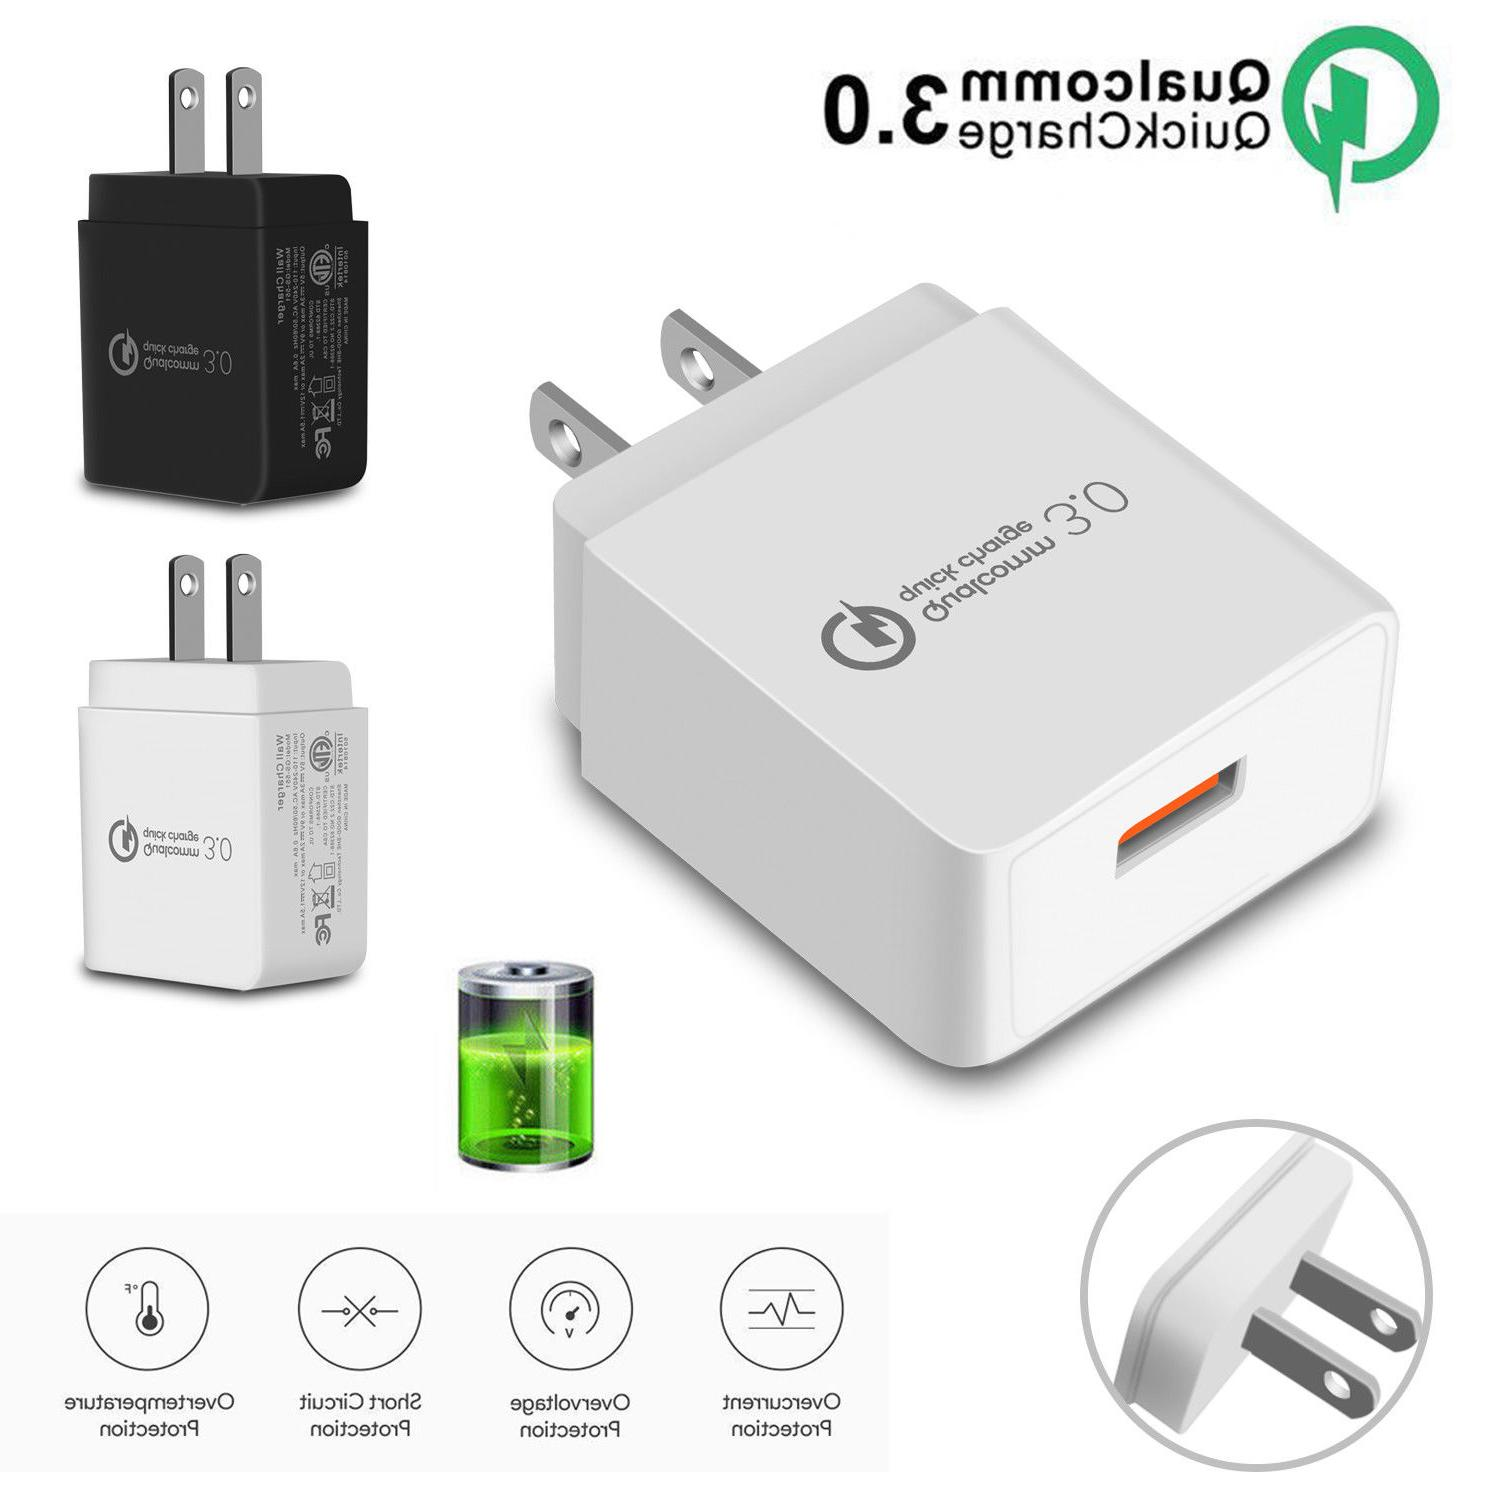 QC 3.0 Fast Charger Adapter USB Wall Charger Portable Travel